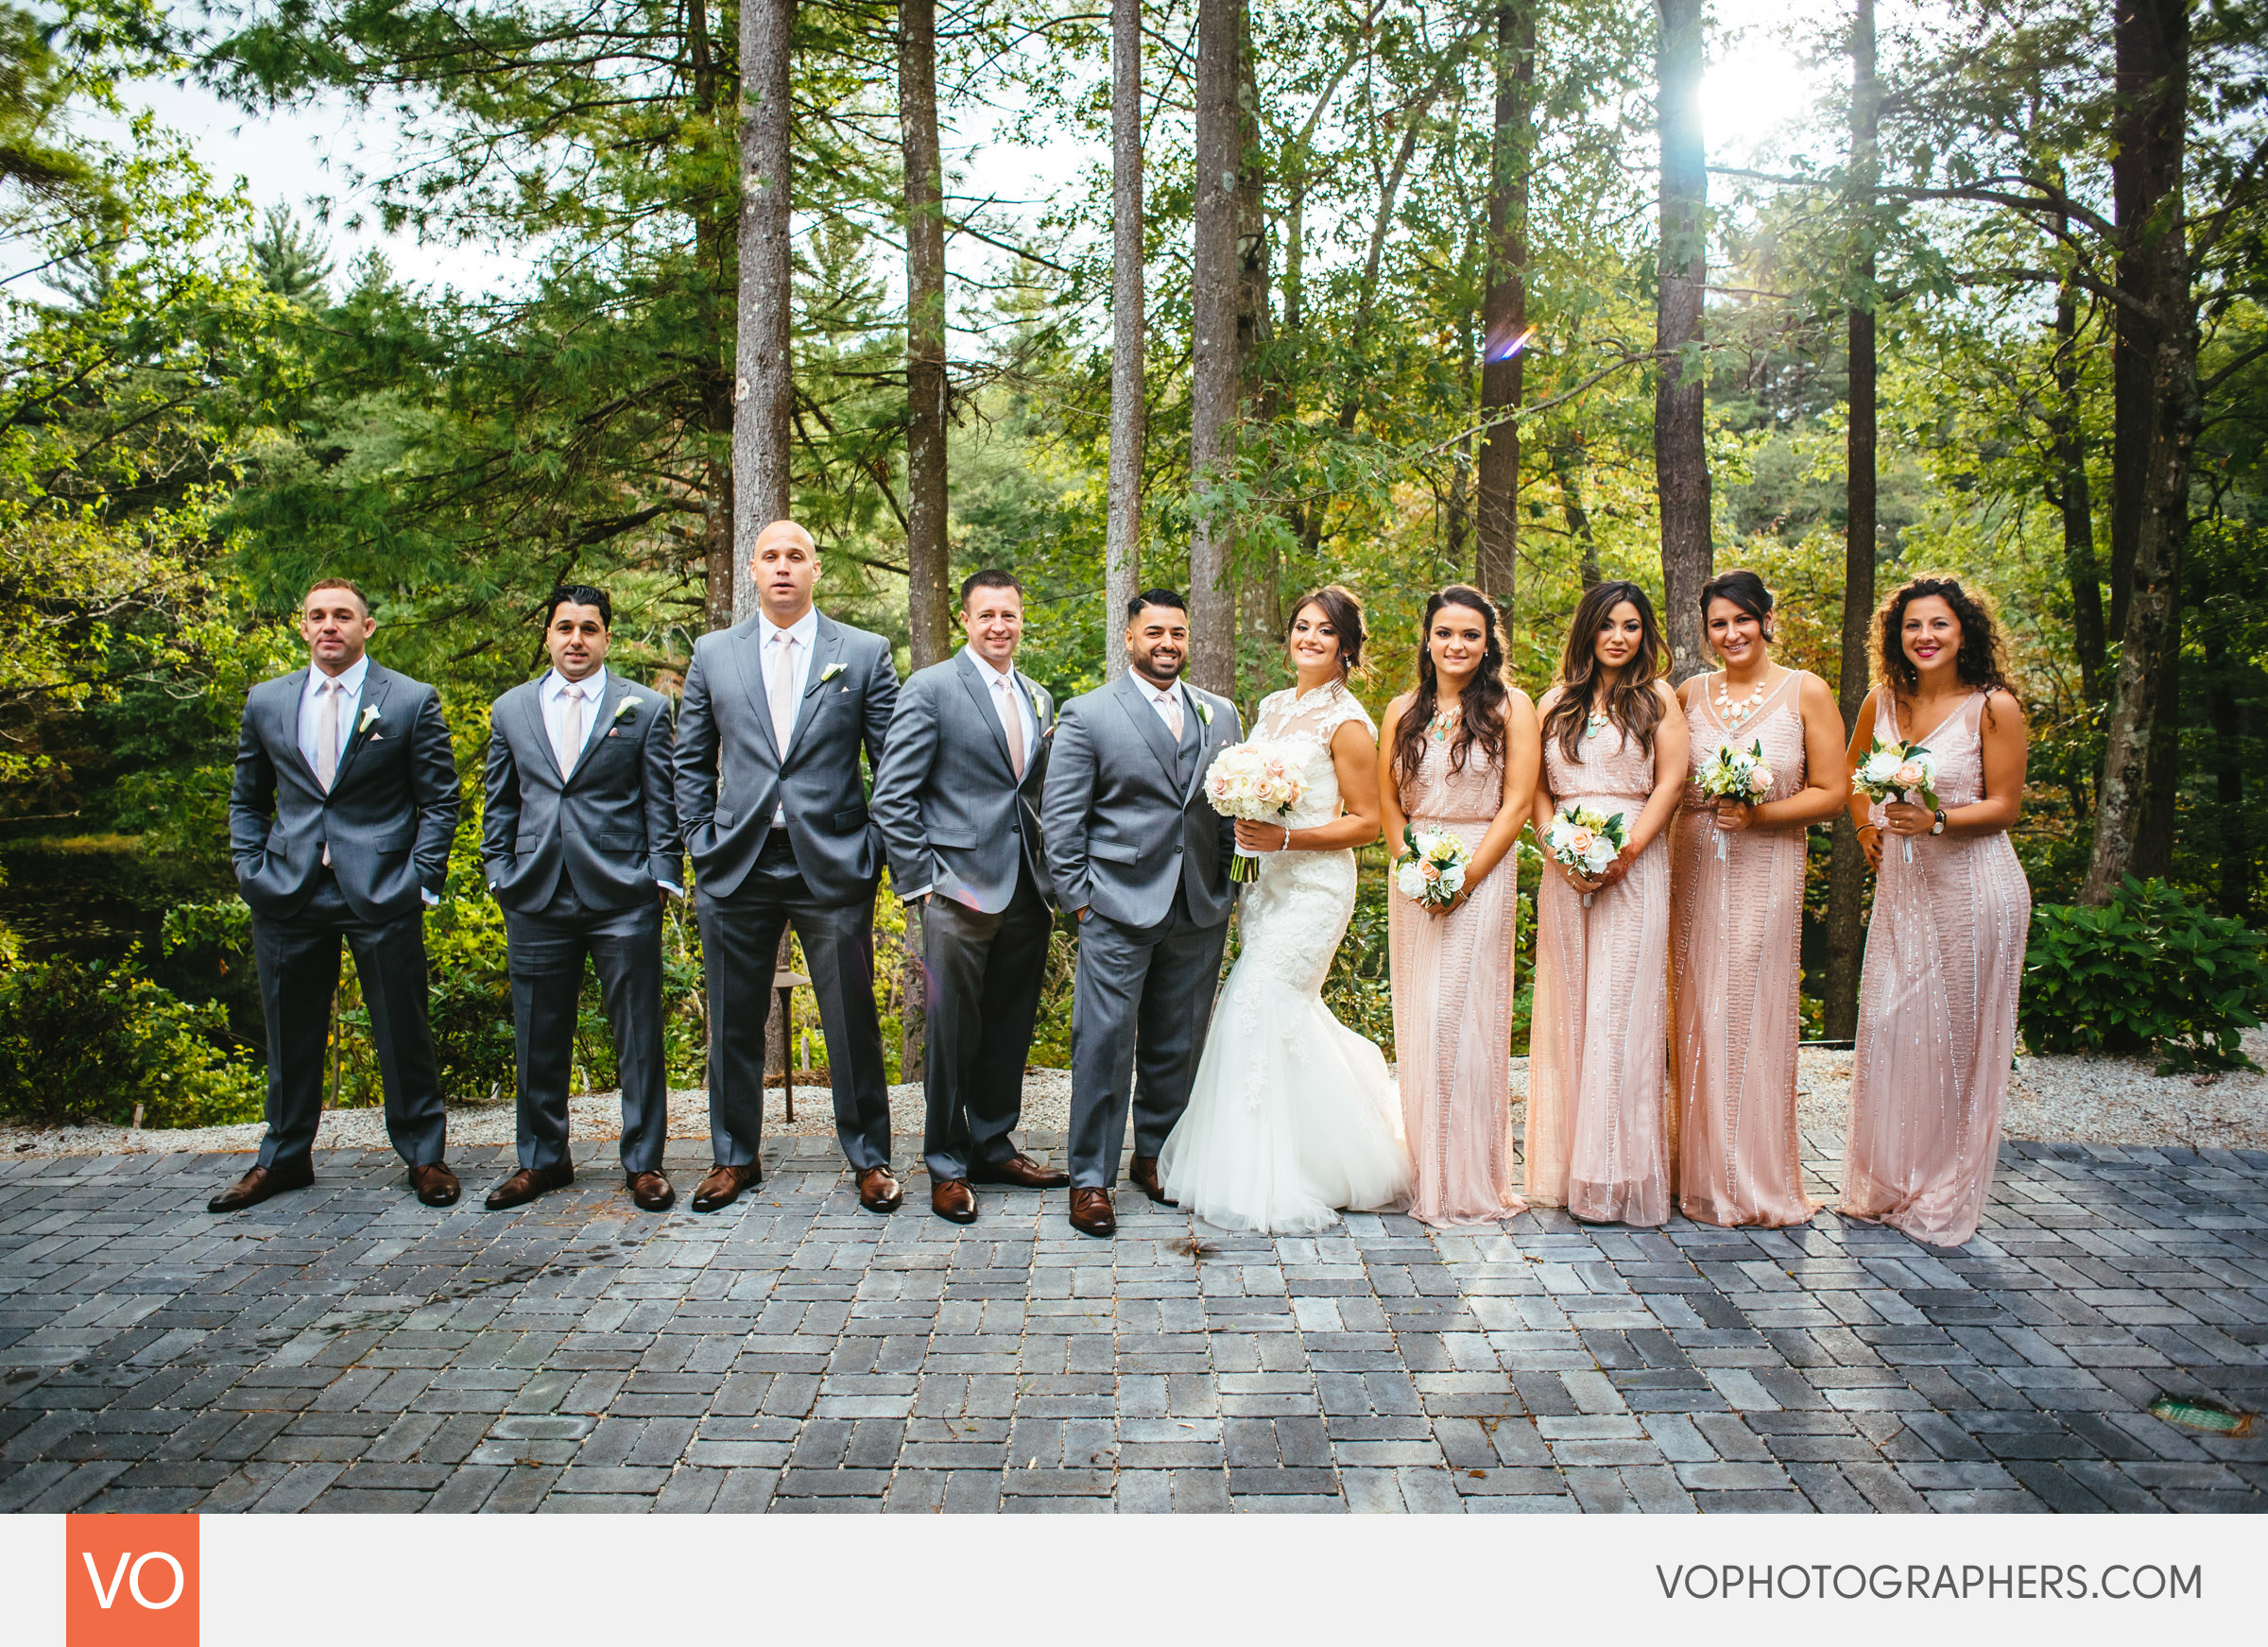 Oriana-Barem-Lakeview-Pavilion-Wedding-0025